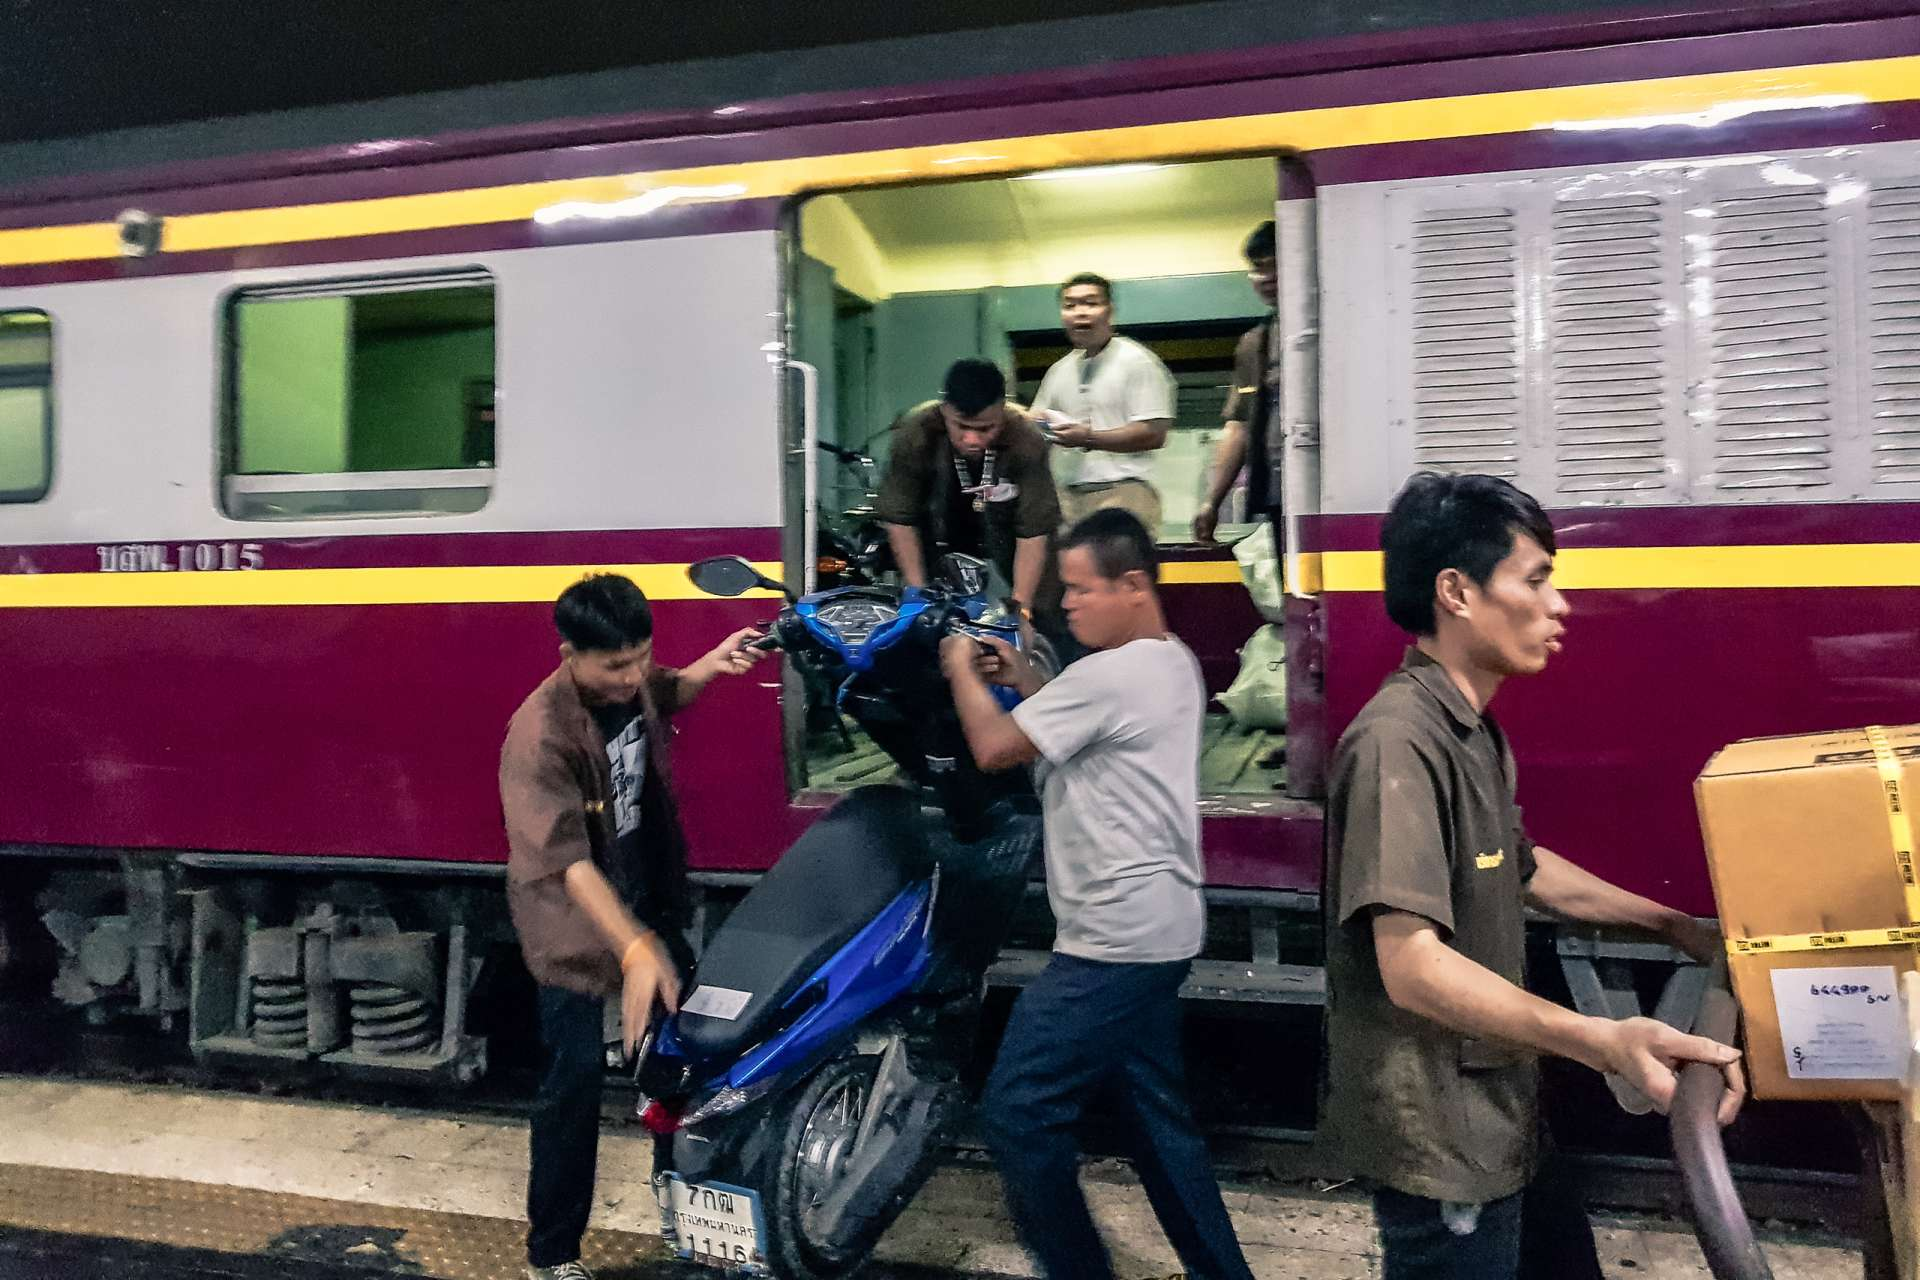 Bangkok bike on train